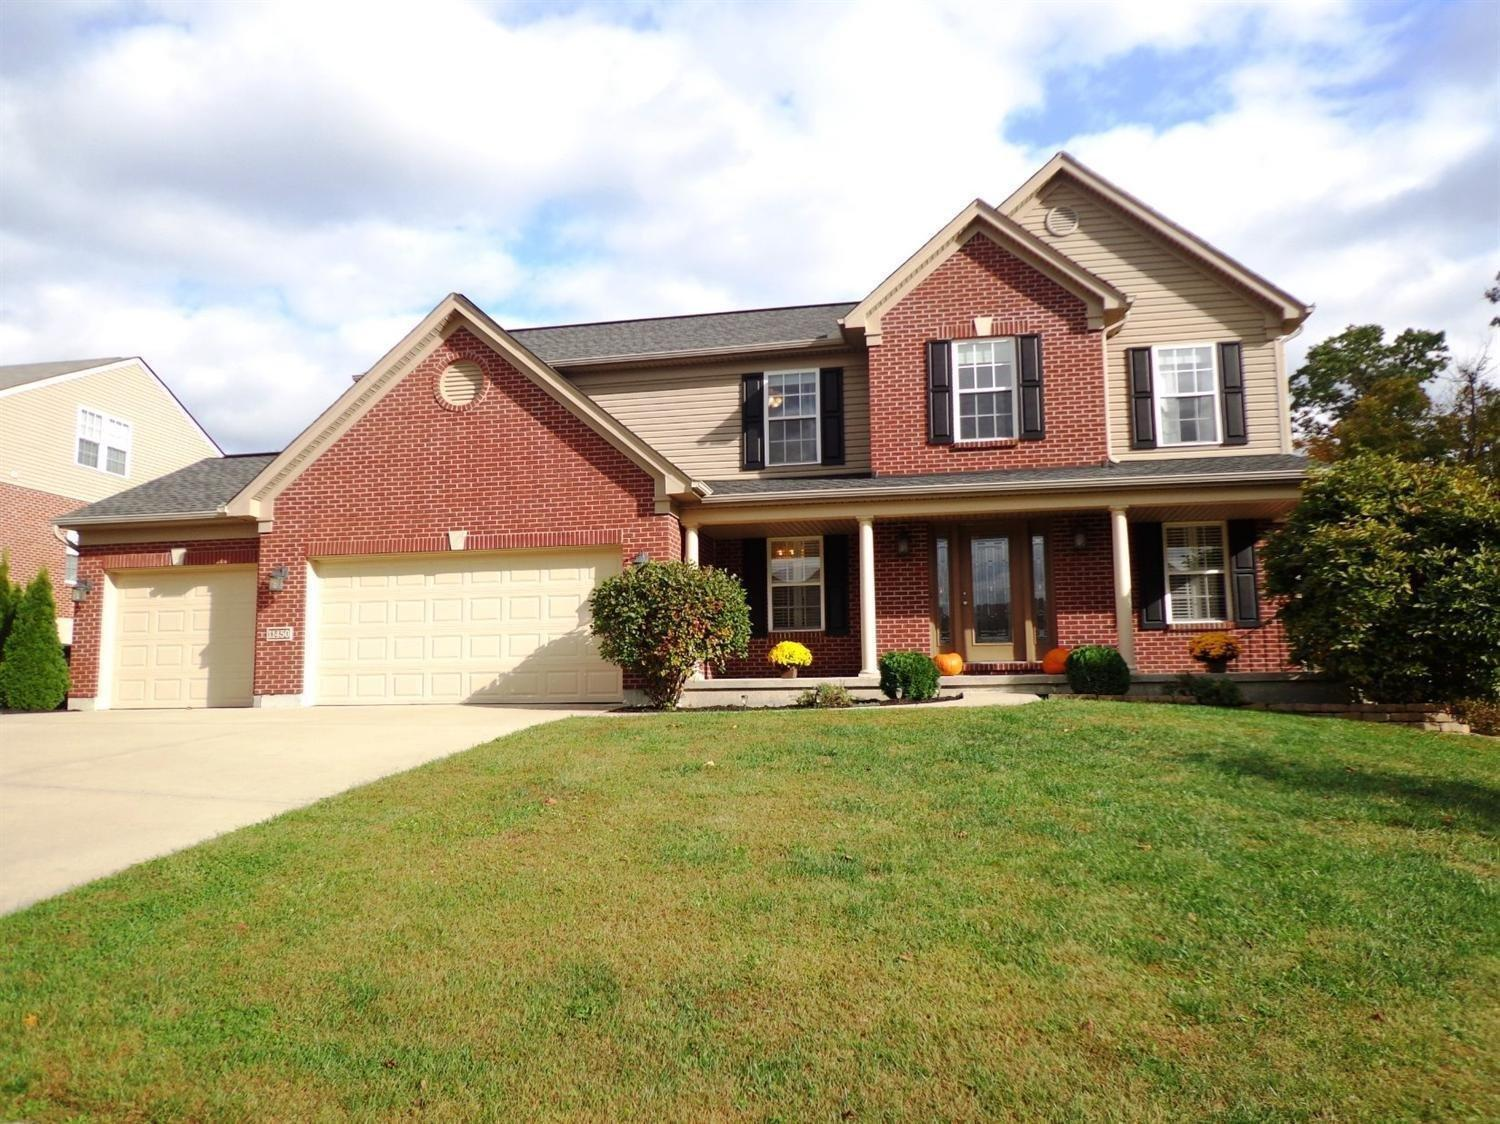 Photo 1 for 11450 Wynfair Ct Walton, KY 41094